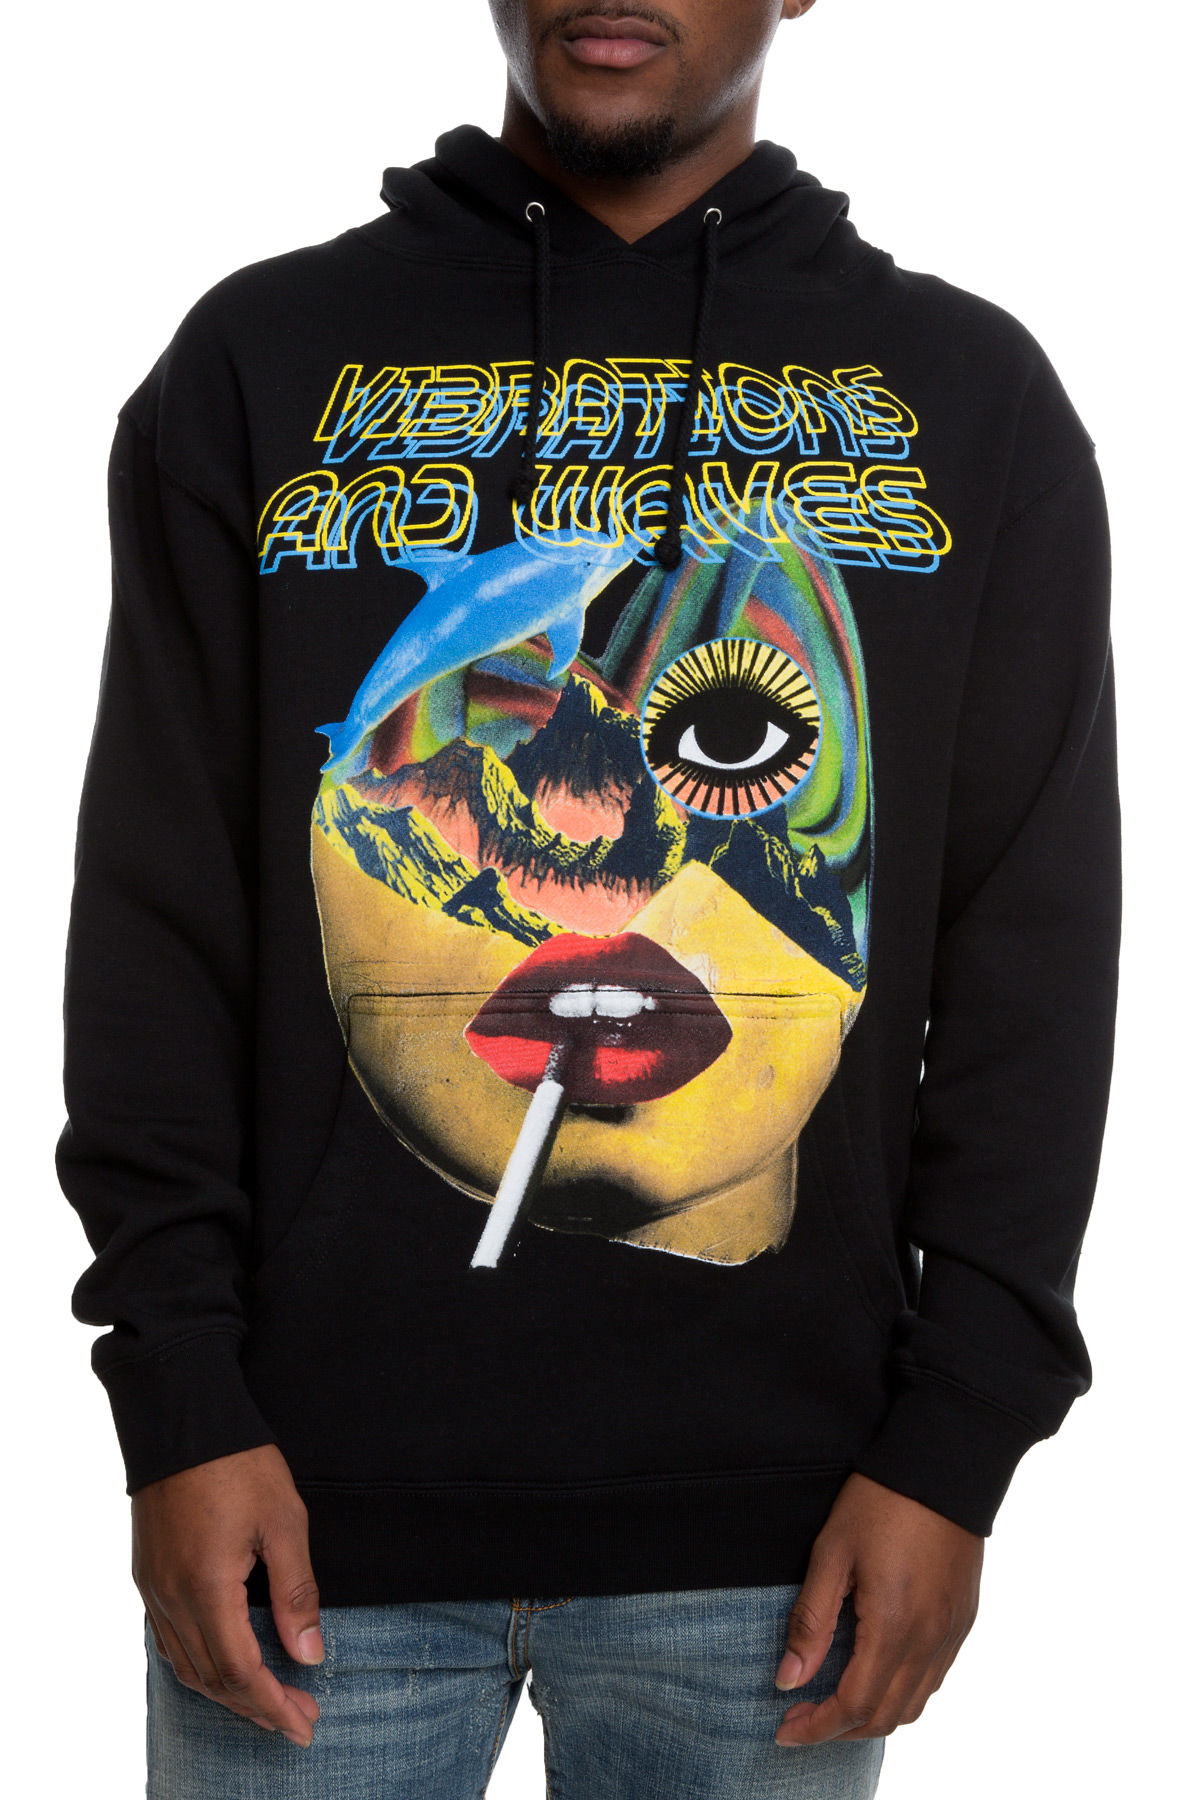 Image of The Vibrations+Waves Hoodie in Black